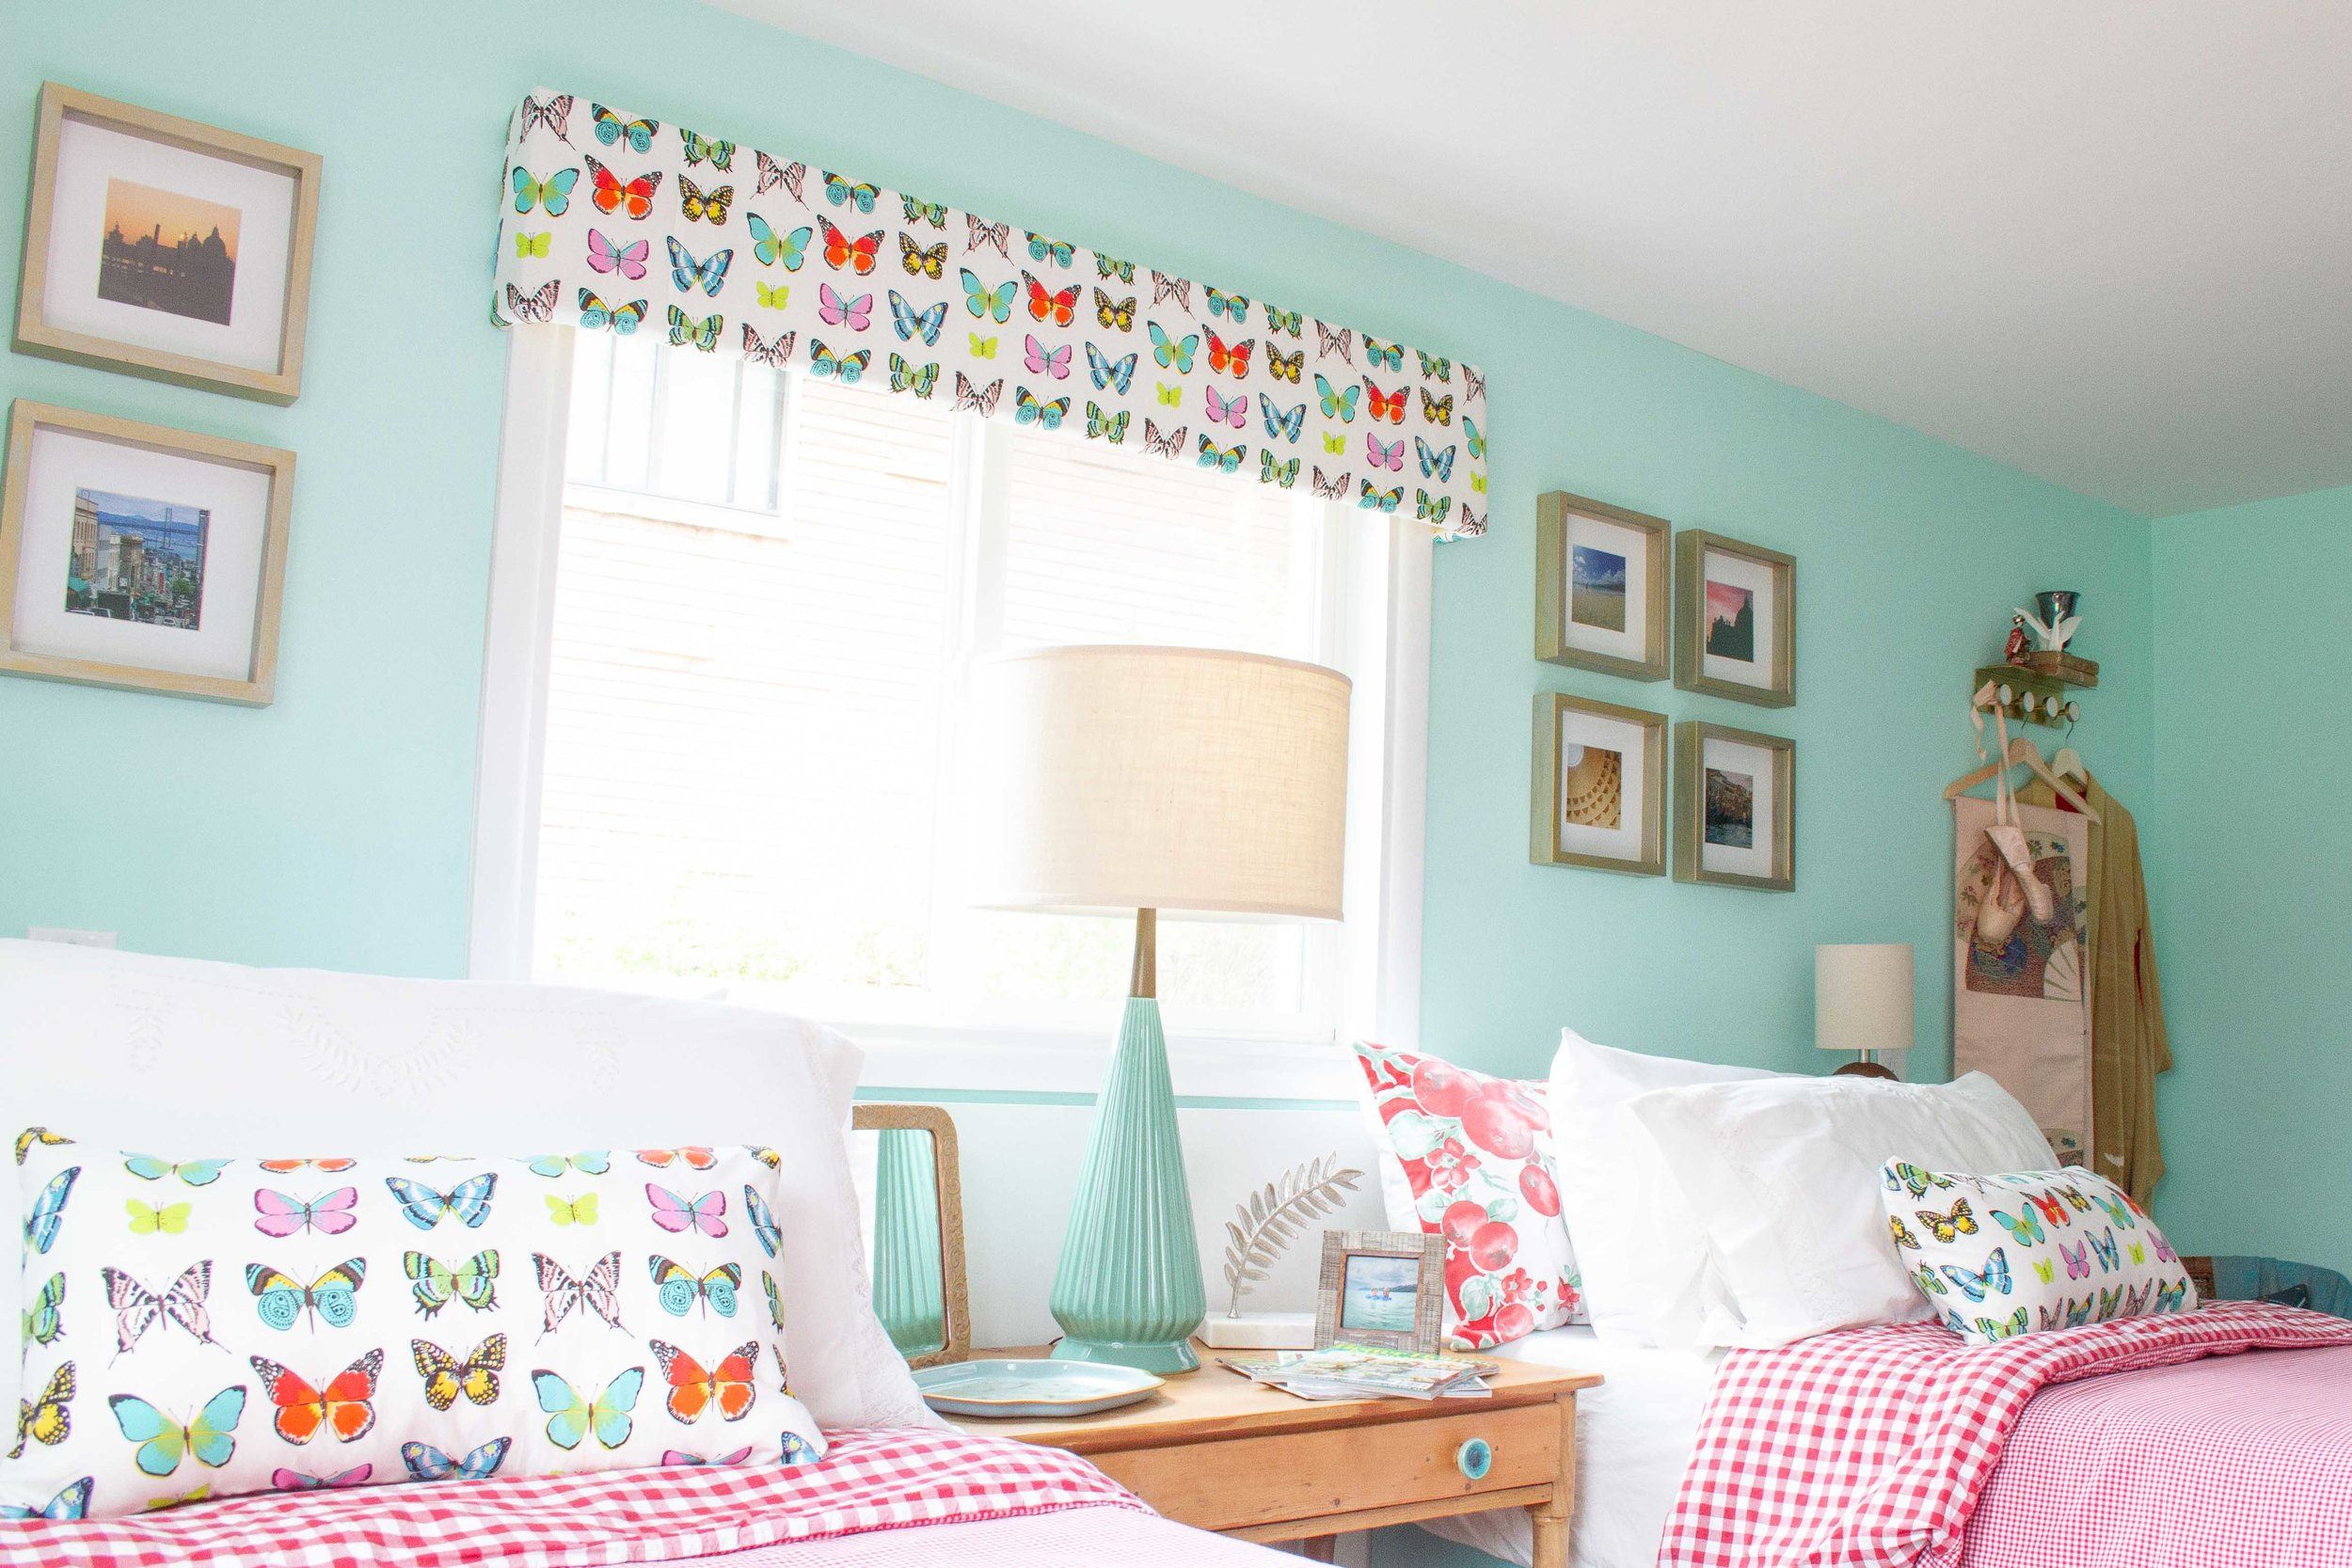 These easy, DIY valances were made from scrap lumber and fabric specifically chosen for this room.